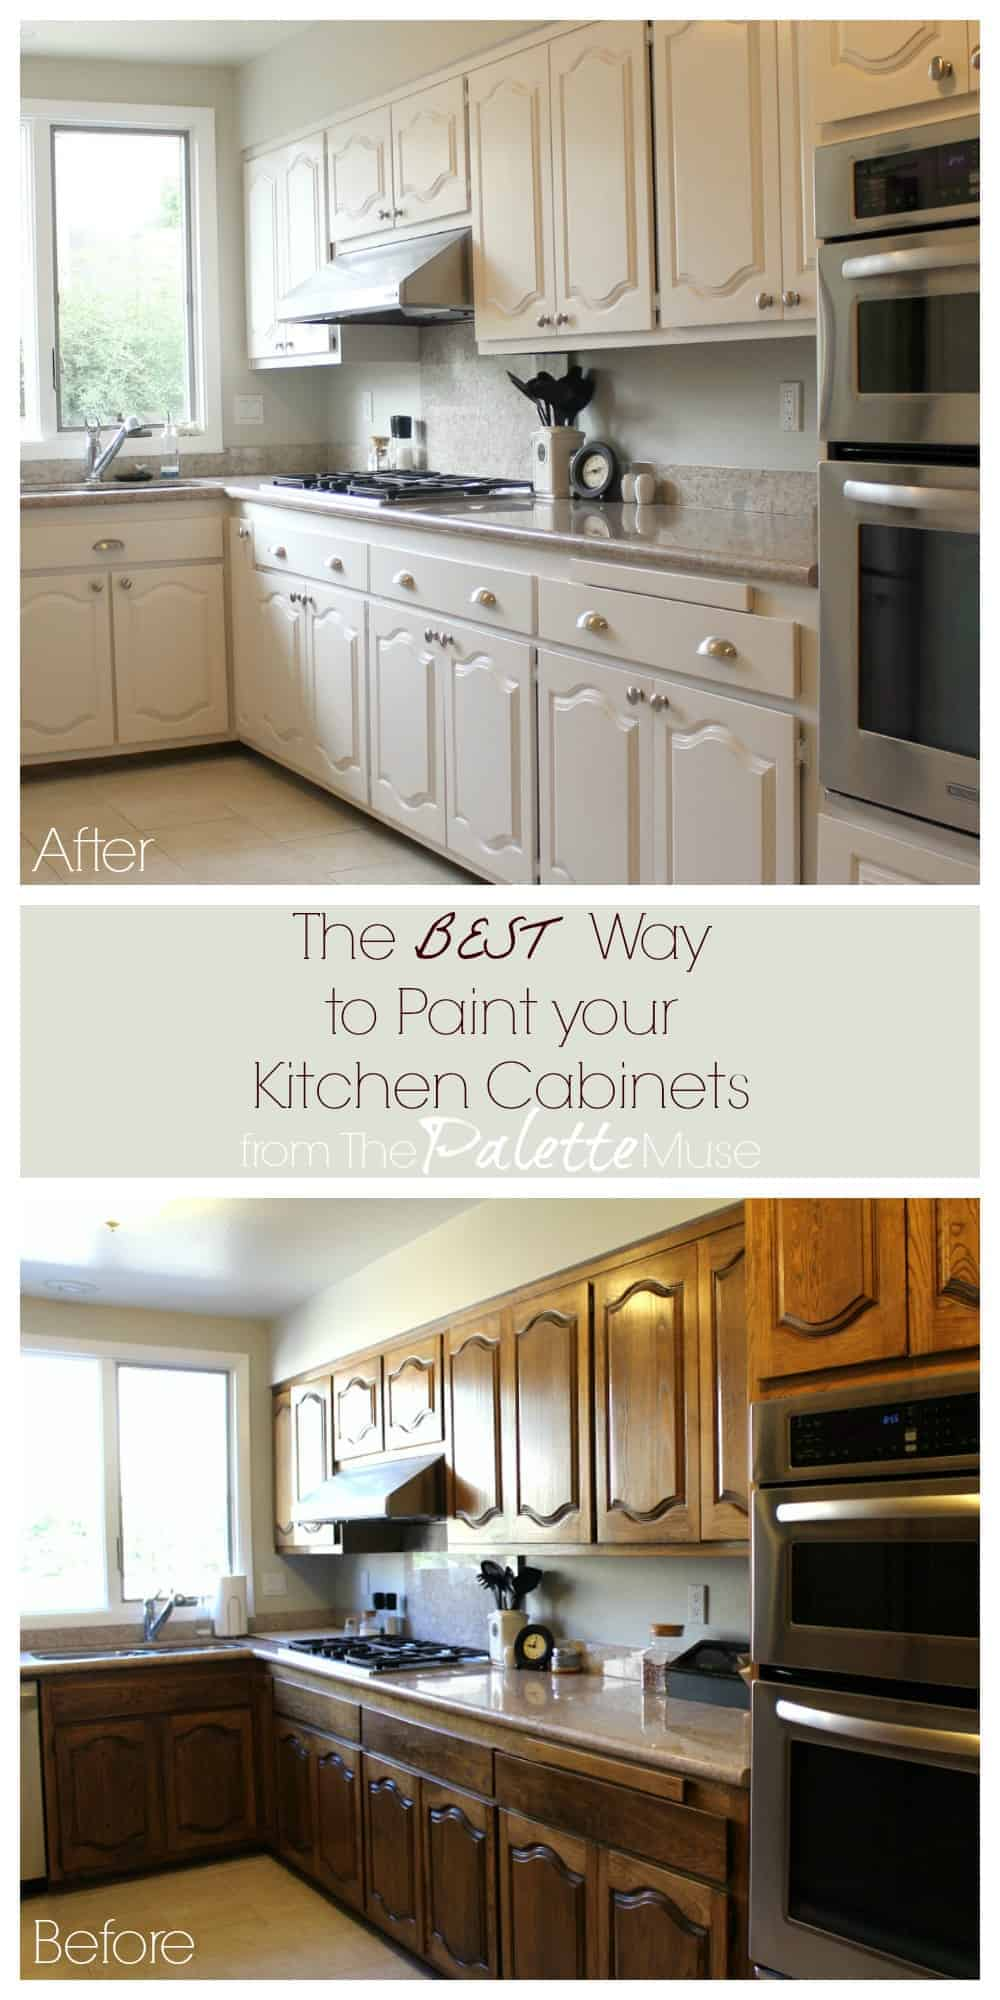 Have You Been Thinking Of Painting Your Kitchen Cabinets? Read This First  And Save Yourself